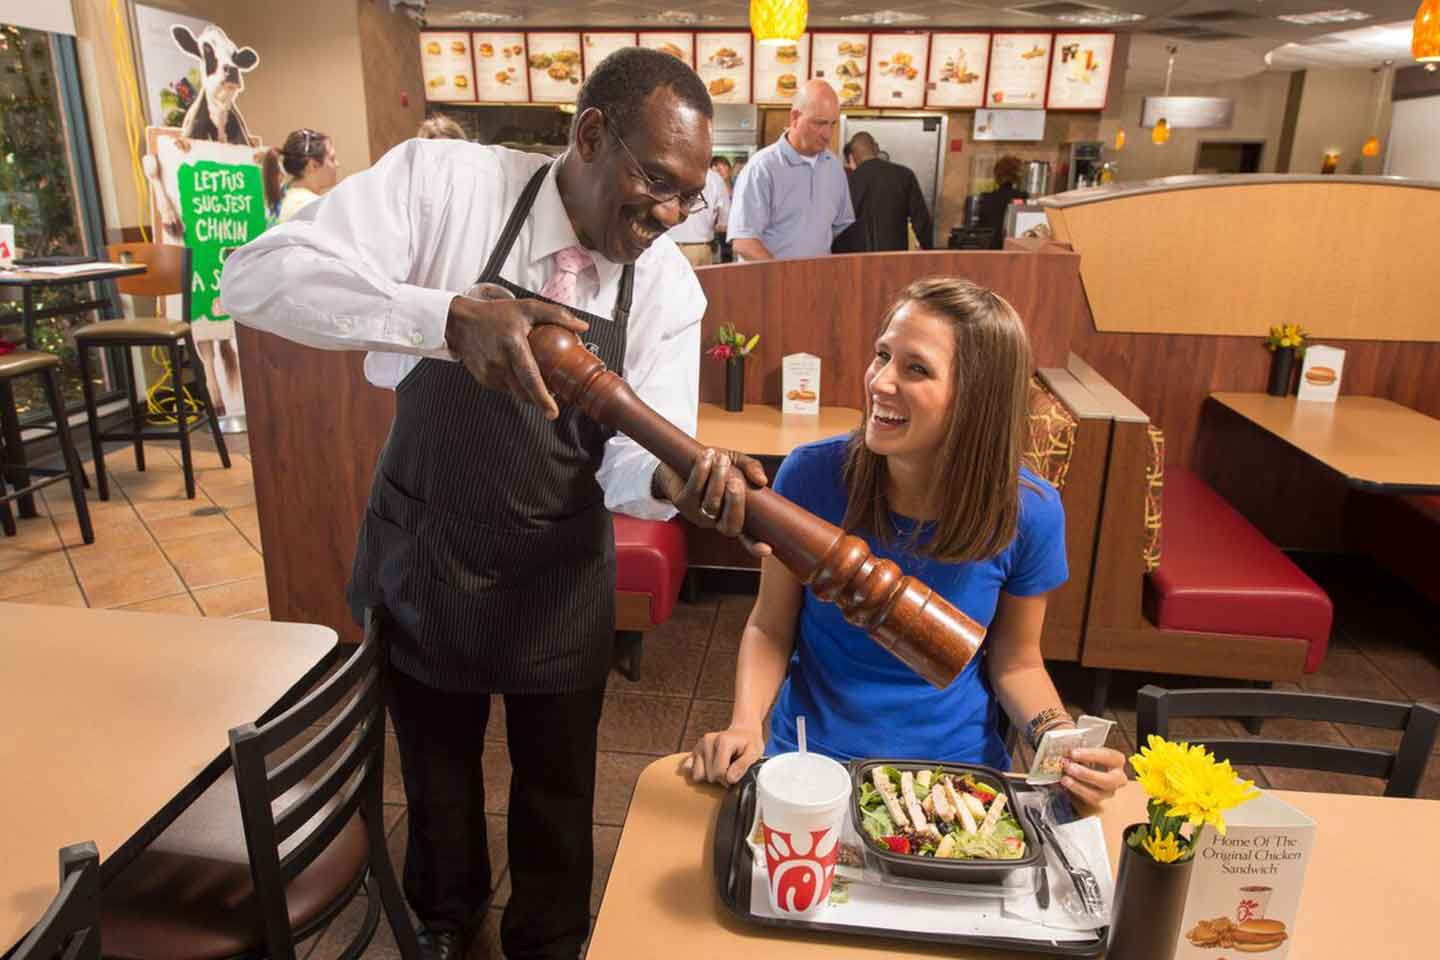 Chick Fil A Careers Jobs And Employment Applications Online Chick Fil A